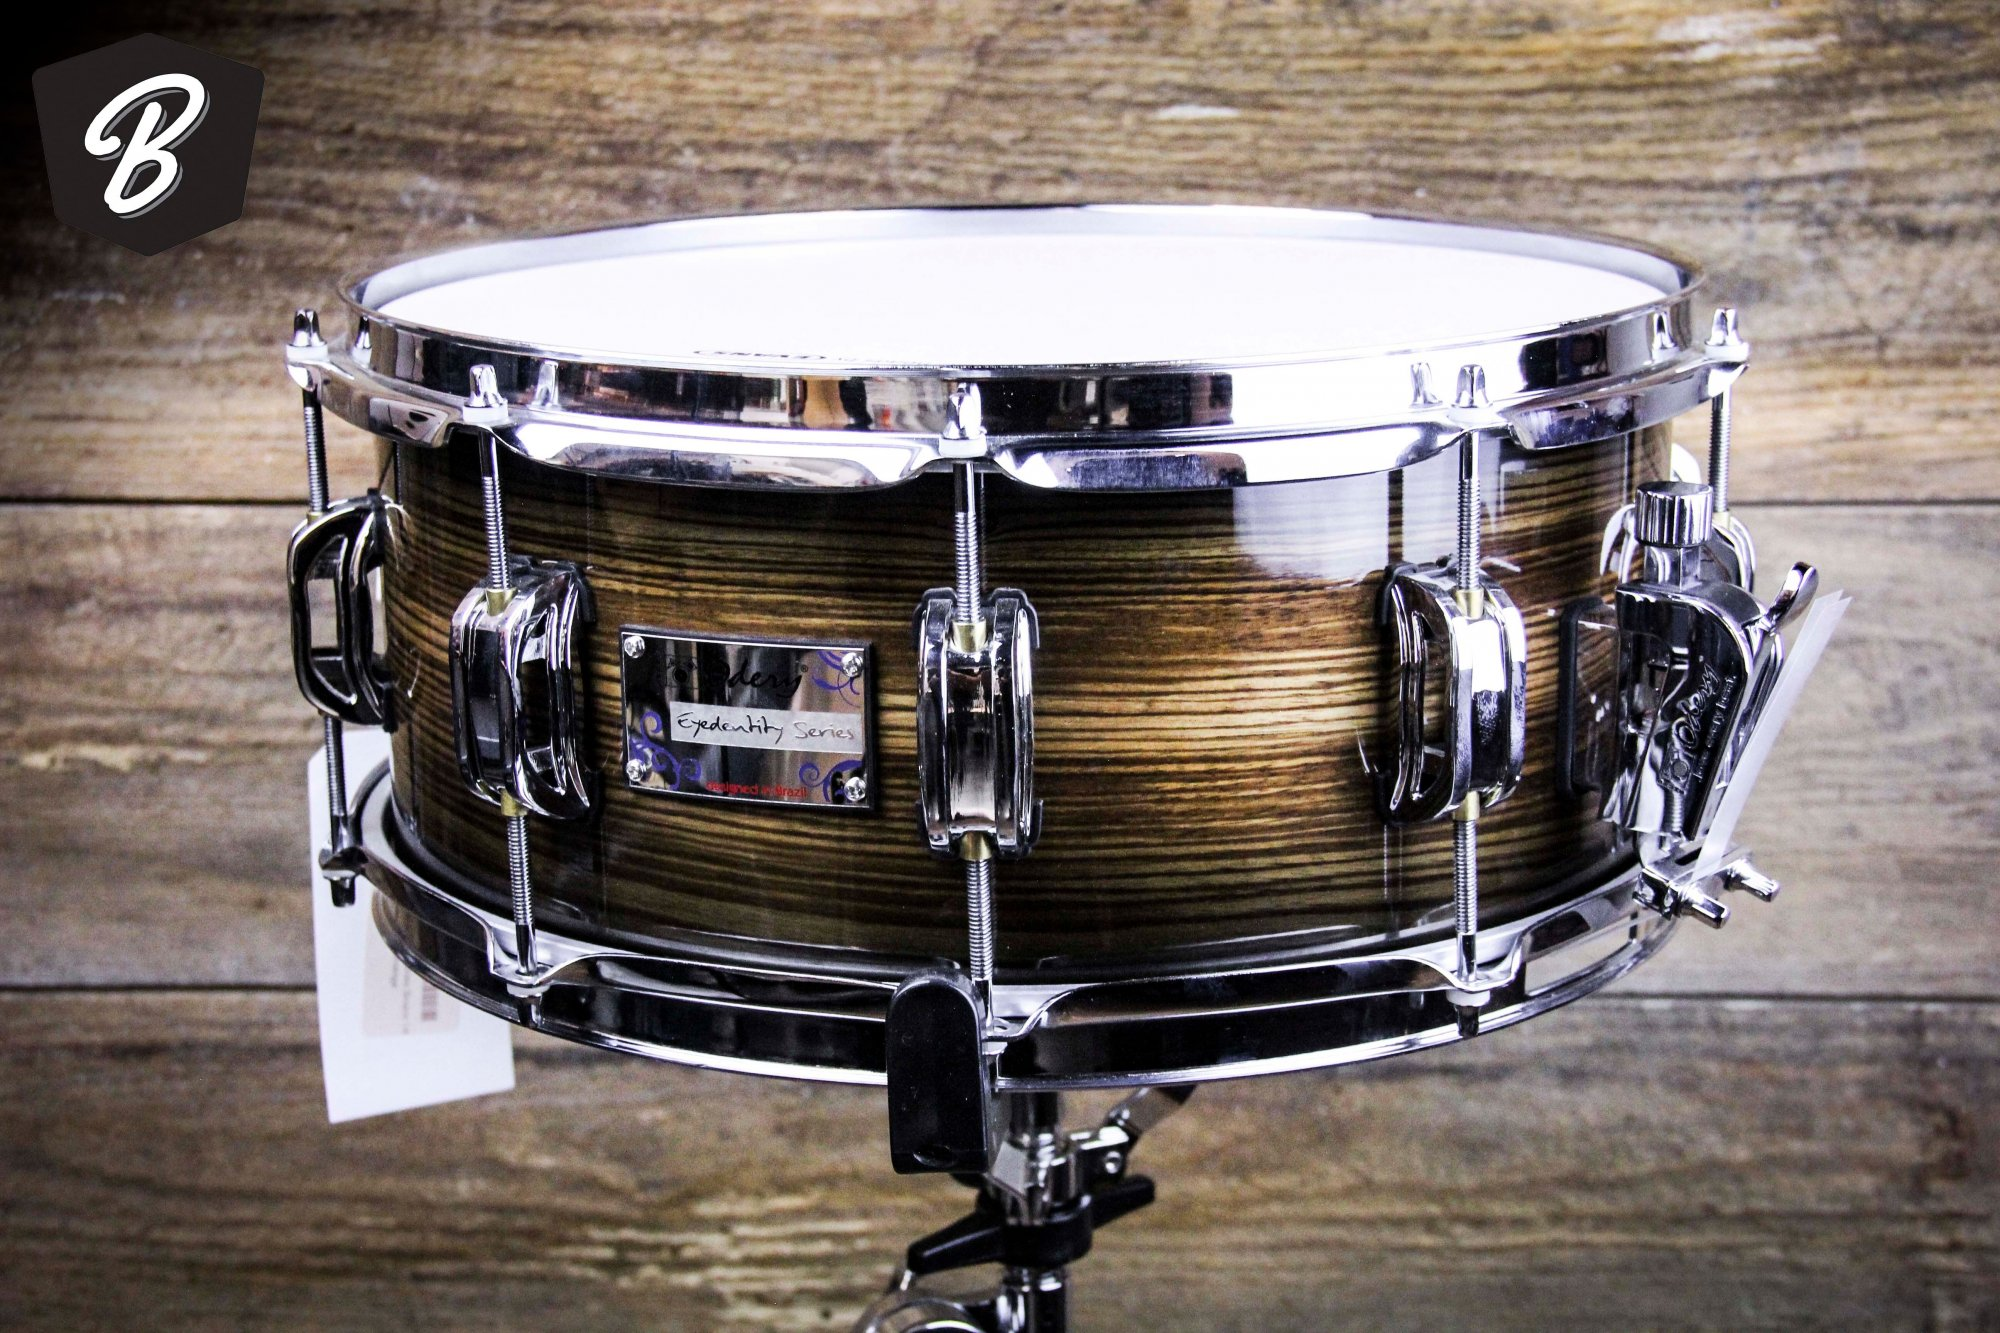 Odery Eyedentity Series Snare 14 x 6 All Birch  Tiger Black Burst